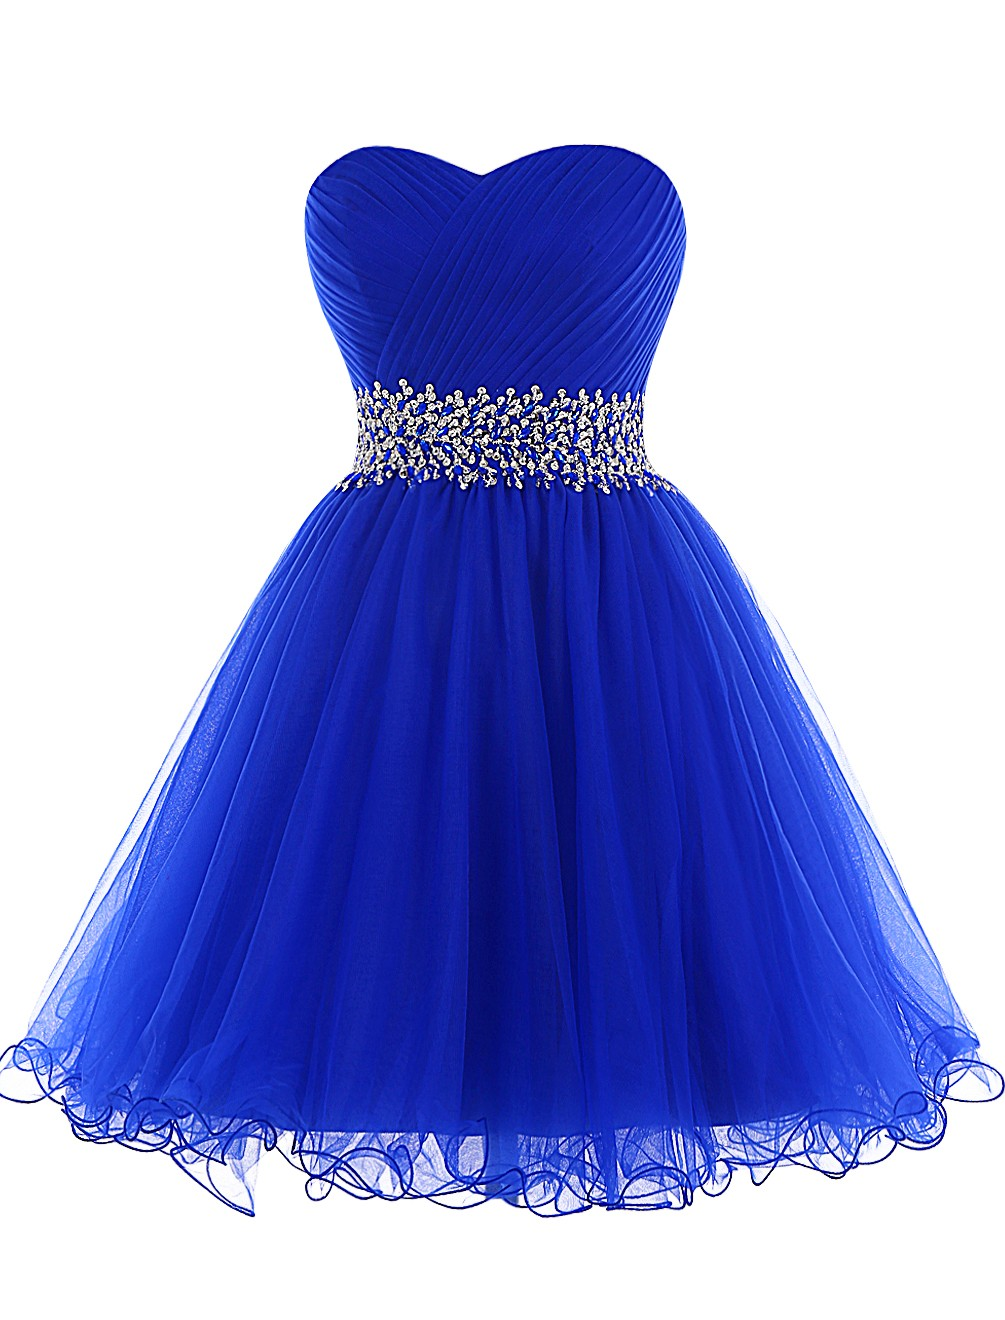 A-line Sweetheart Short Tulle Lace-up Beaded Royal Blue Cocktail Homecoming  Dress